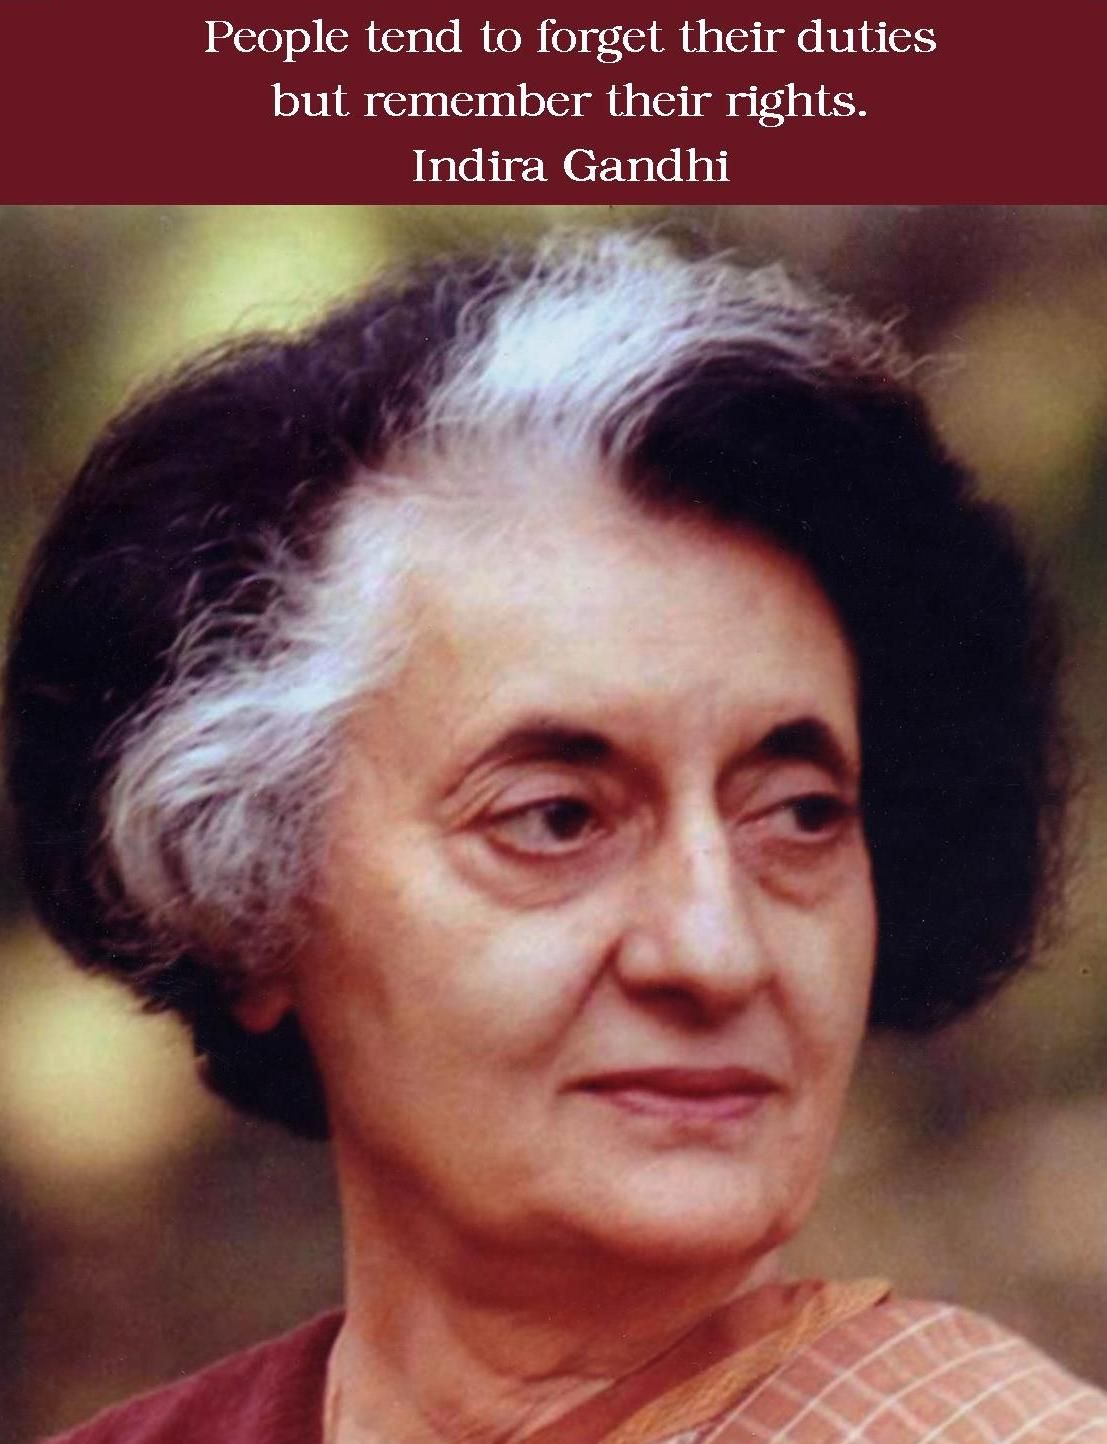 People tend to forget their duties but remember their rights indira people tend to forget their duties but remember their rights indira gandhi altavistaventures Image collections